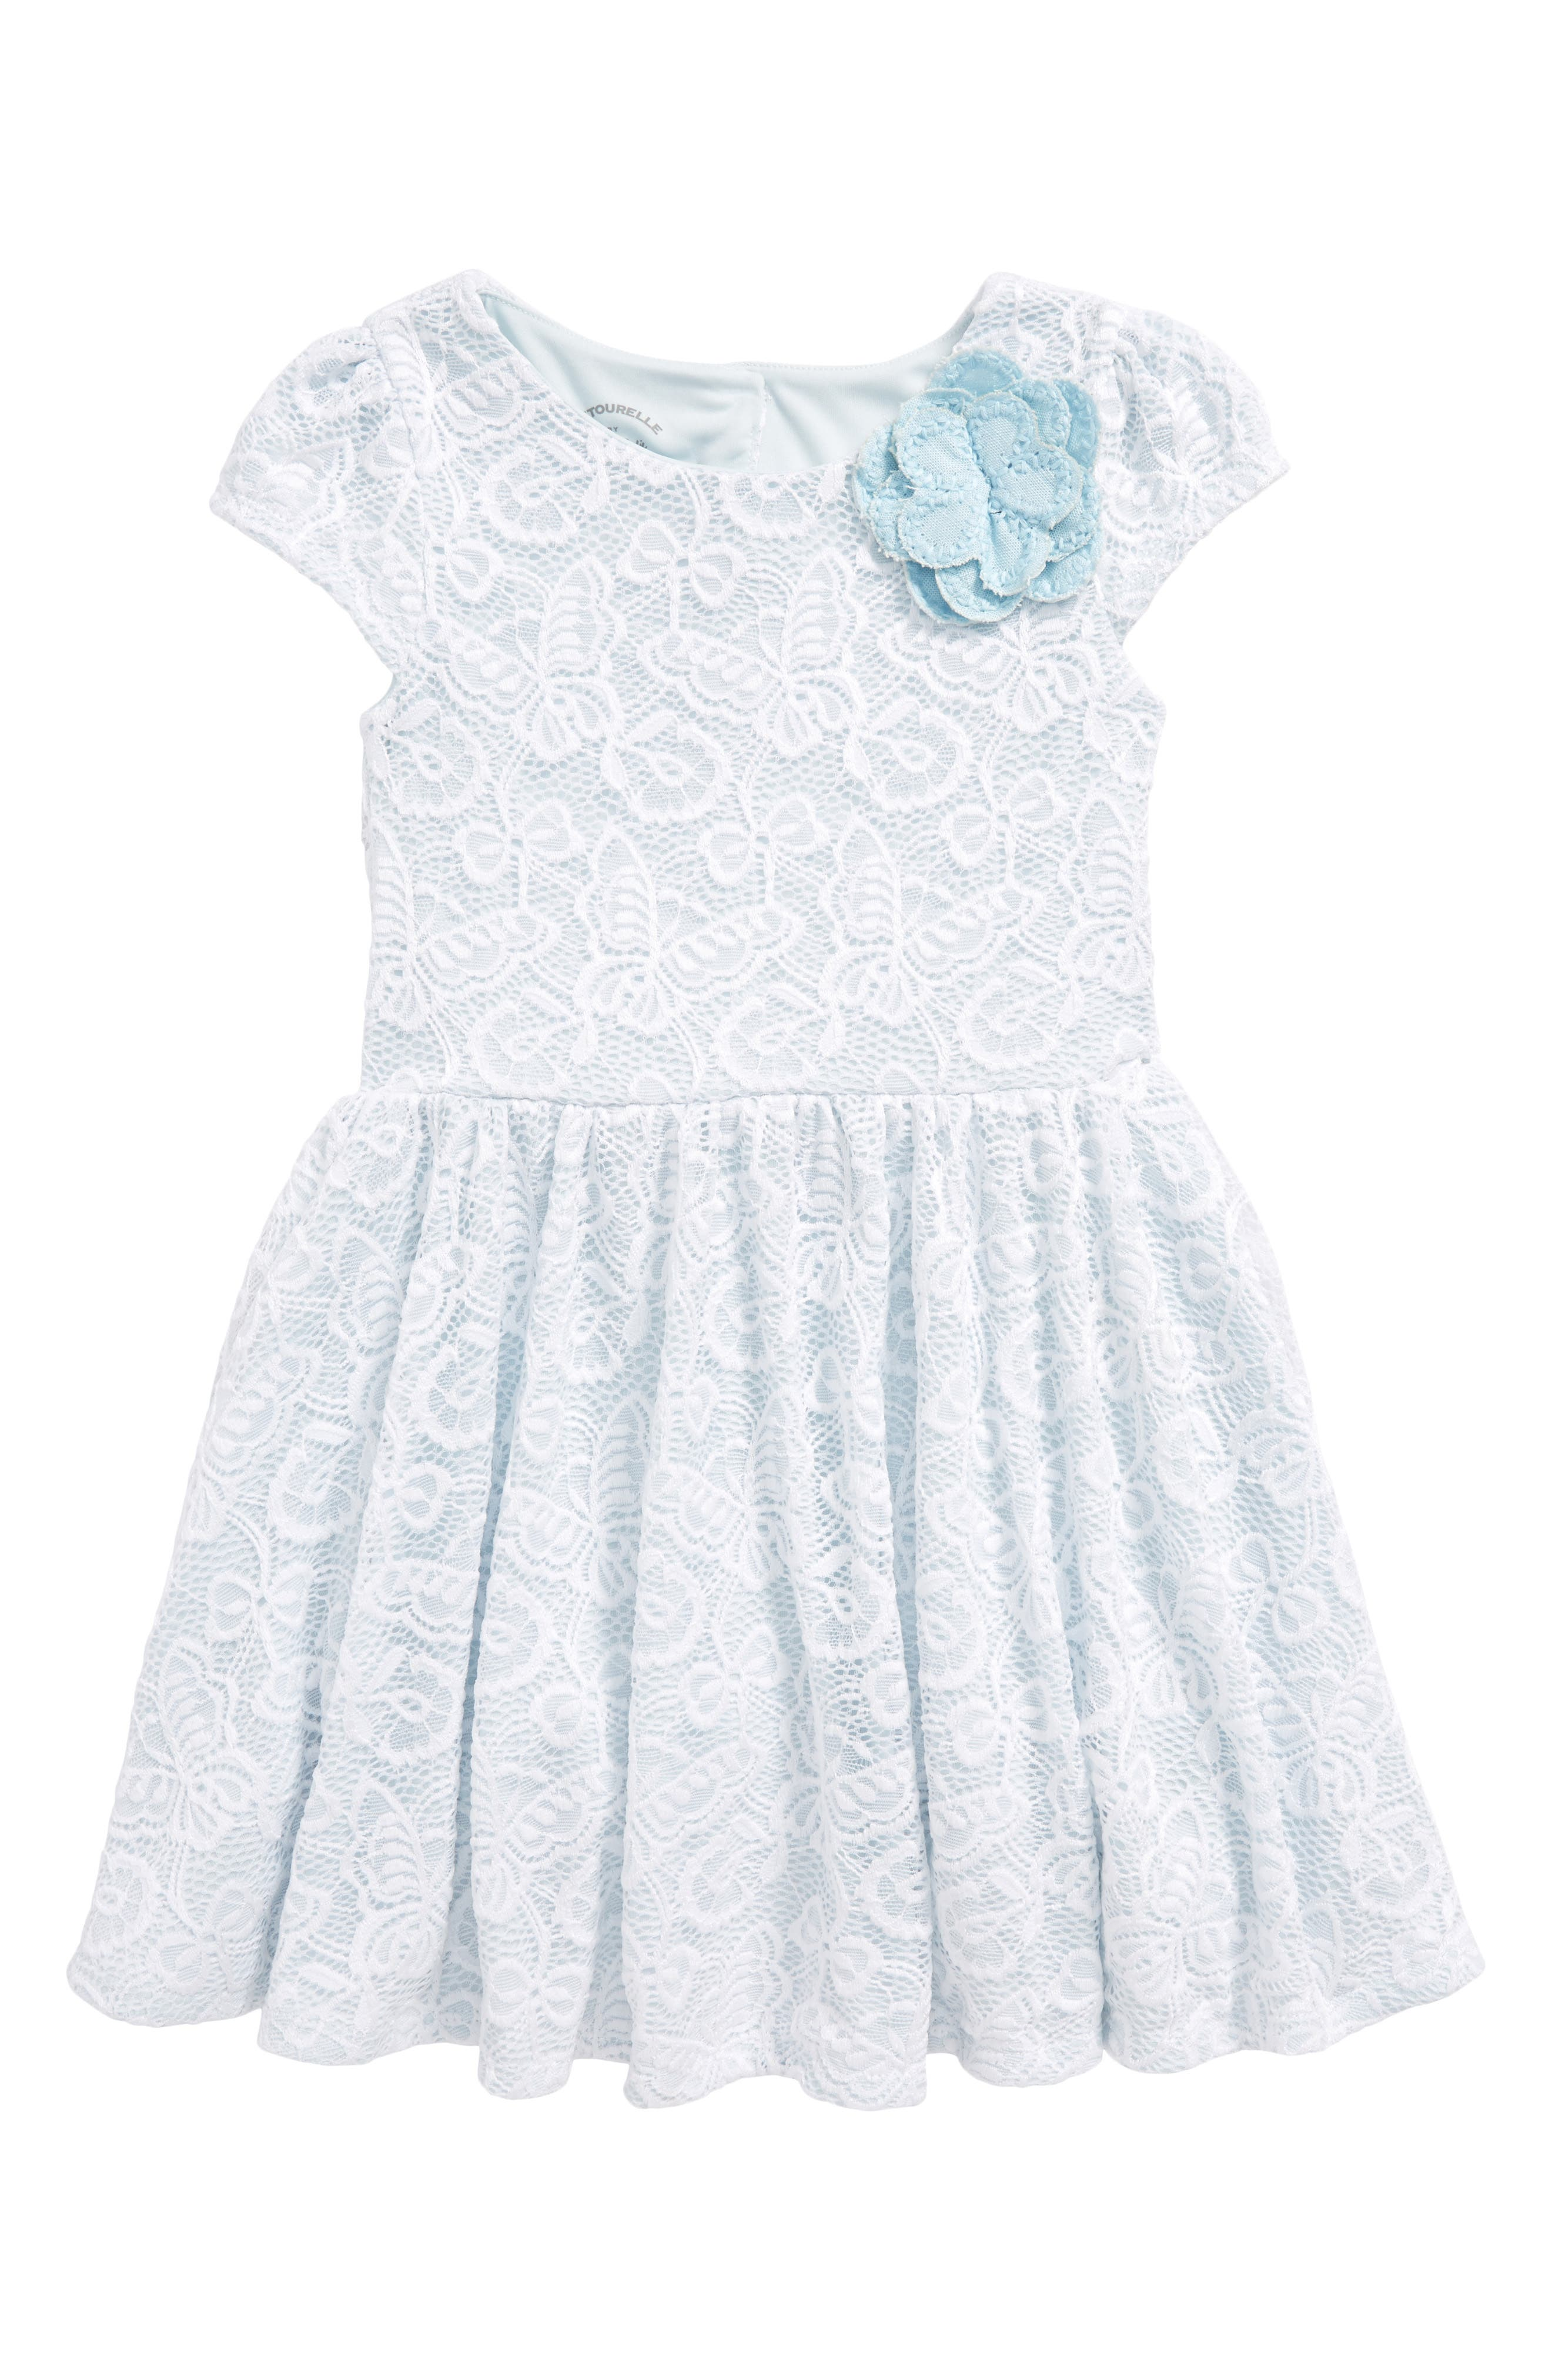 Pastourelle by Pippa and Julie Lace Skater Dress (Toddler Girls, Little Girls & Big Girls)